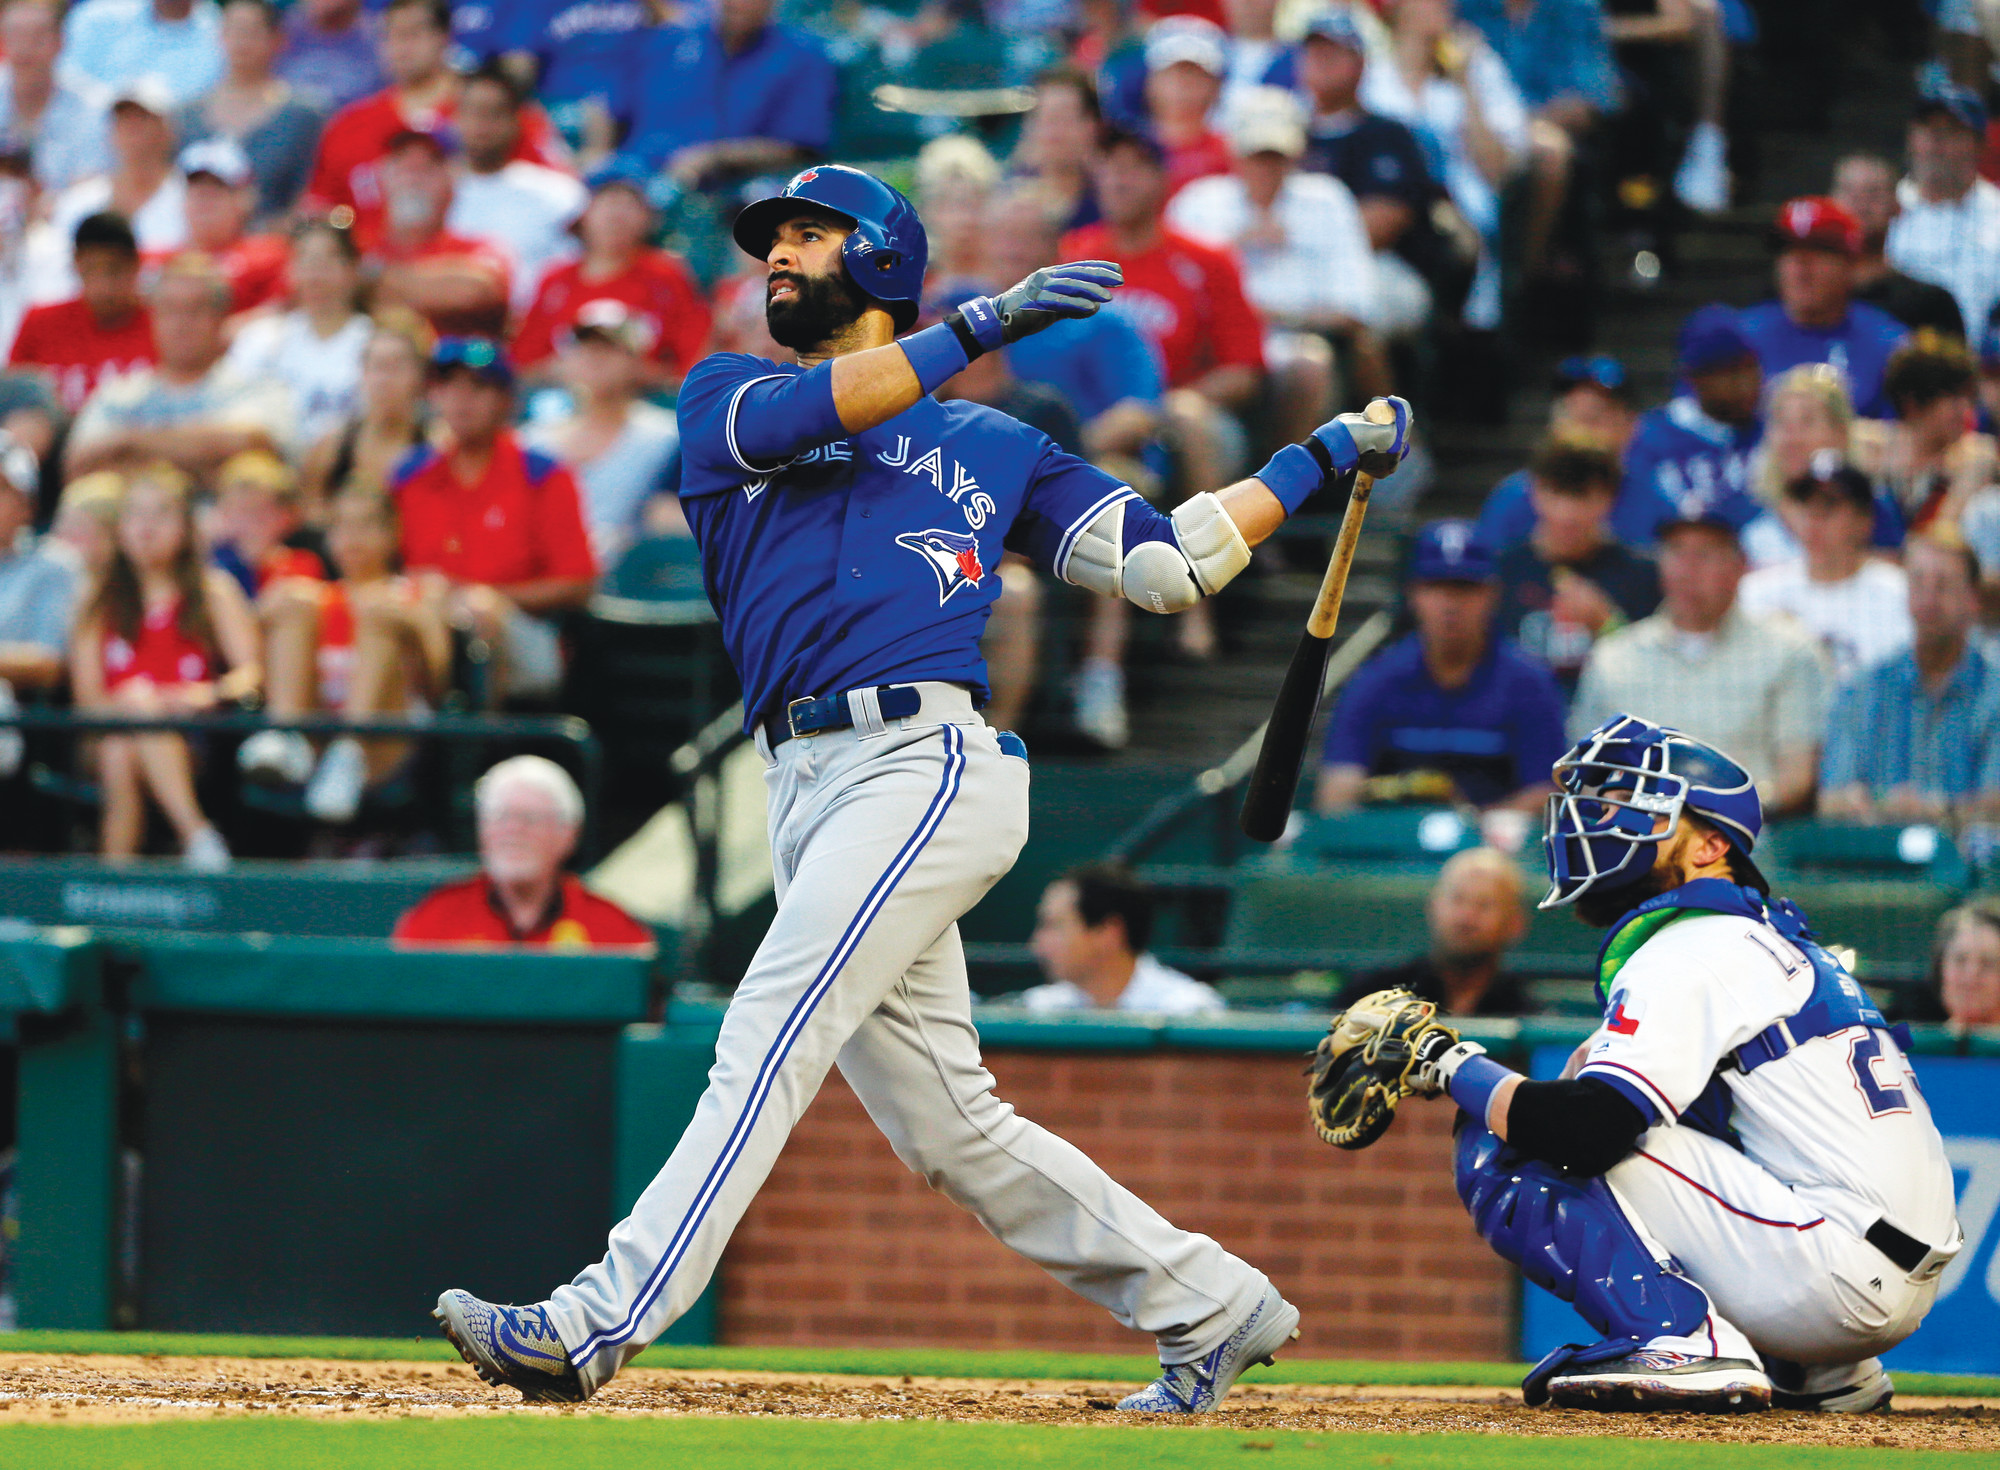 7ec282854e3 Braves sign 6-time all-star Bautista to minor league deal